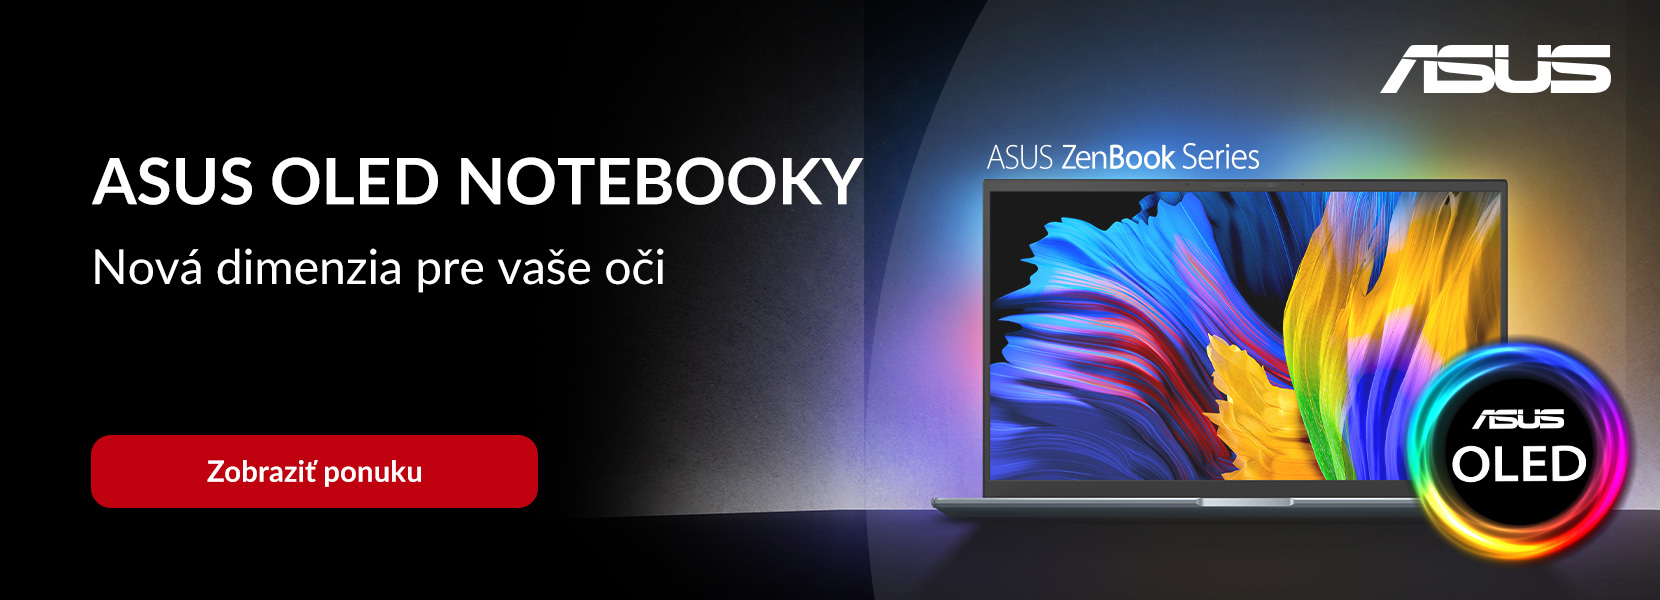 ASUS OLED NOTEBOOKY